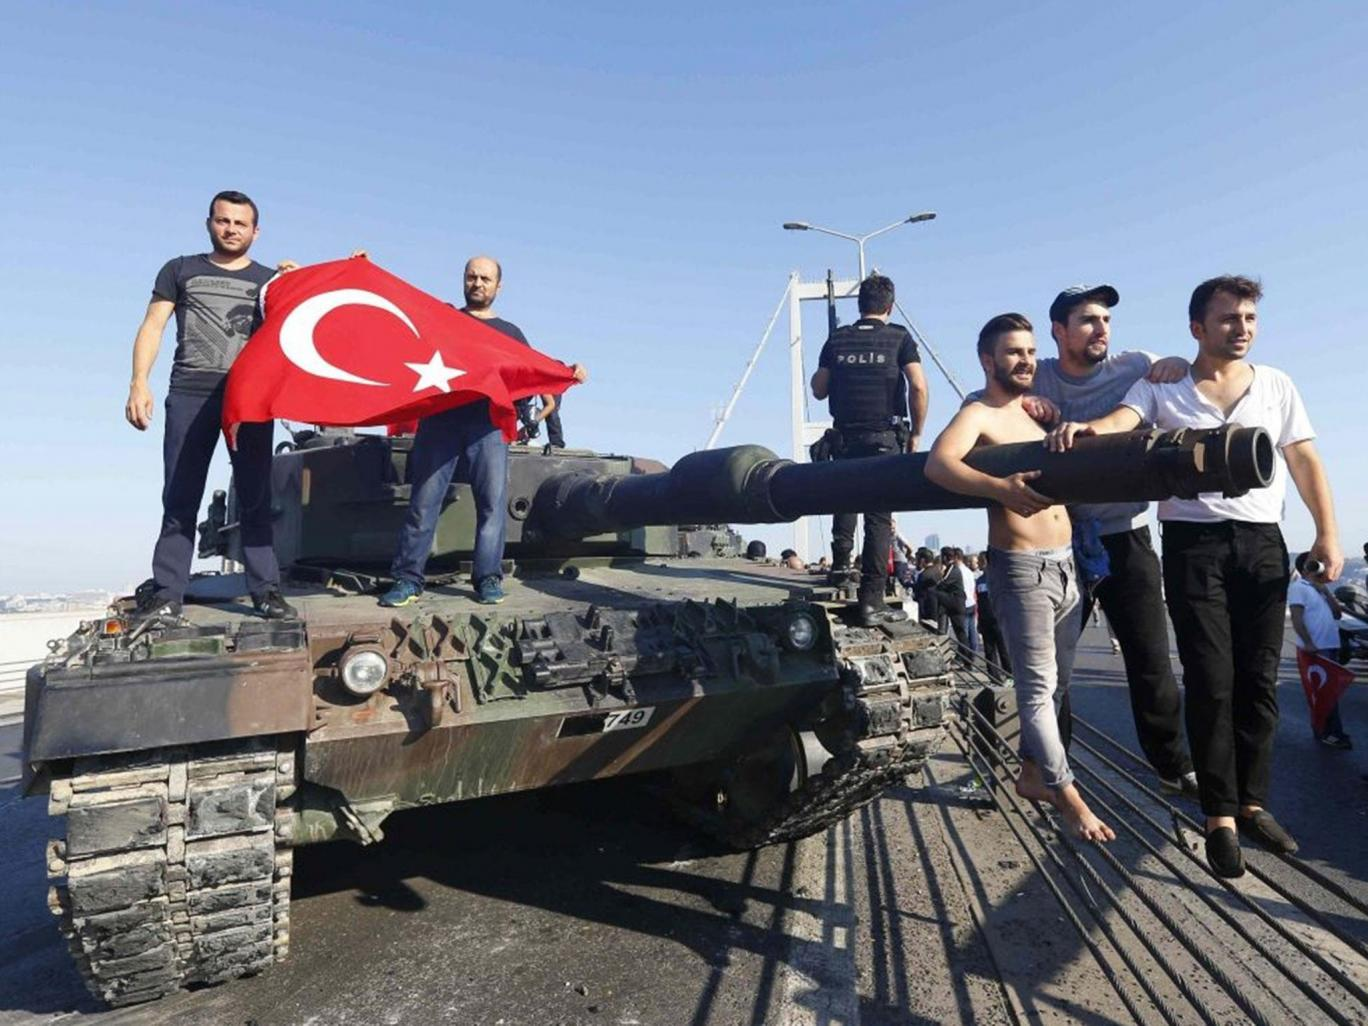 Civilians carry the Turkish flag onto a tank abandoned by rebel soldiers Reuters